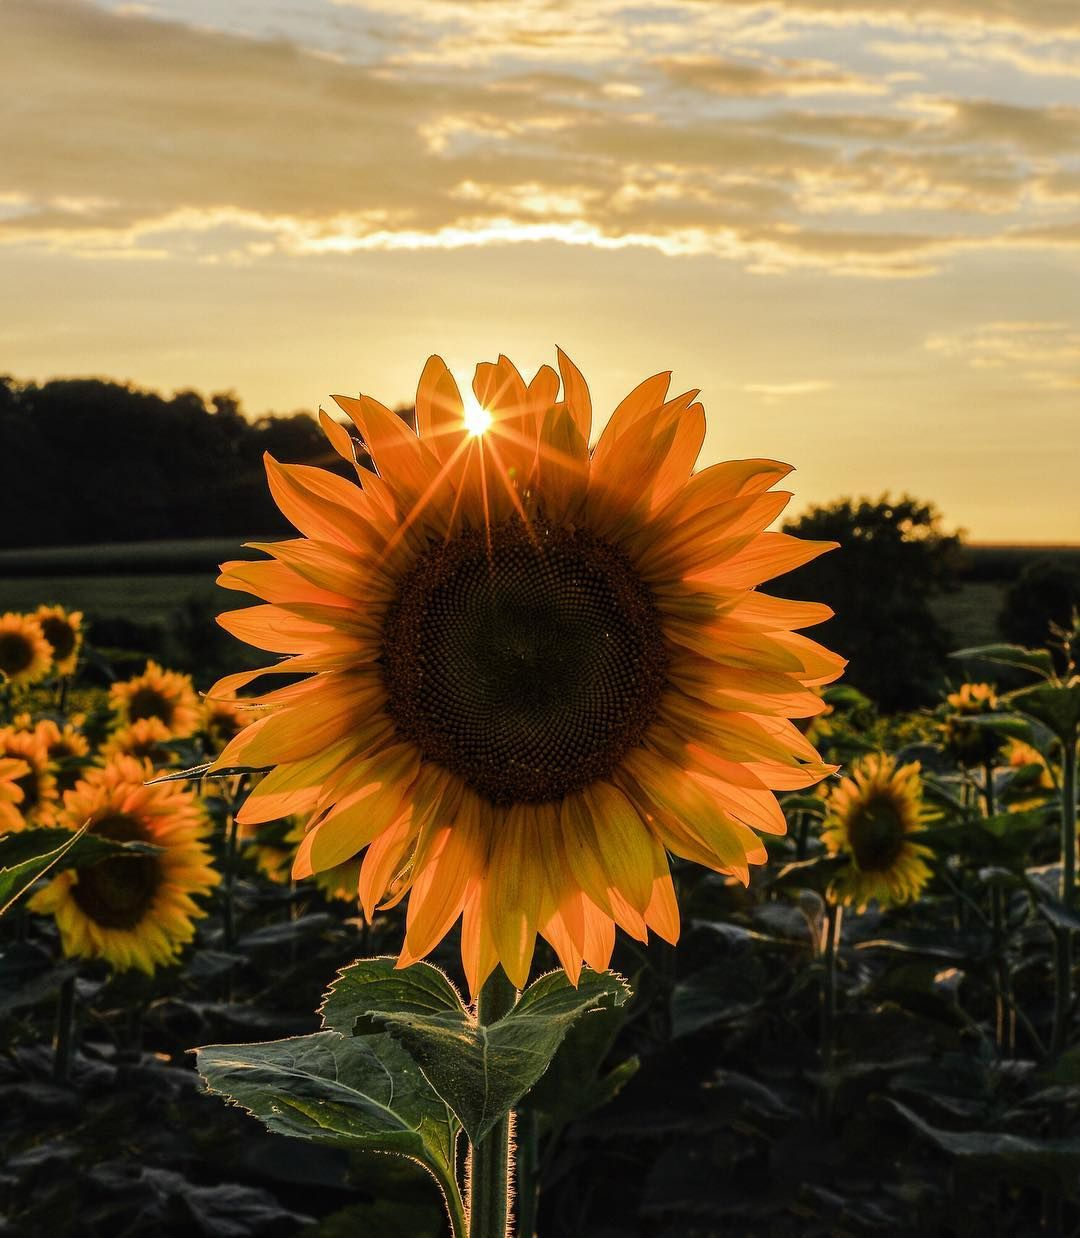 Roctopshots Photo Contest Thisisroc Com Sunflower Pictures Sunflower Iphone Wallpaper Sunflower Photography